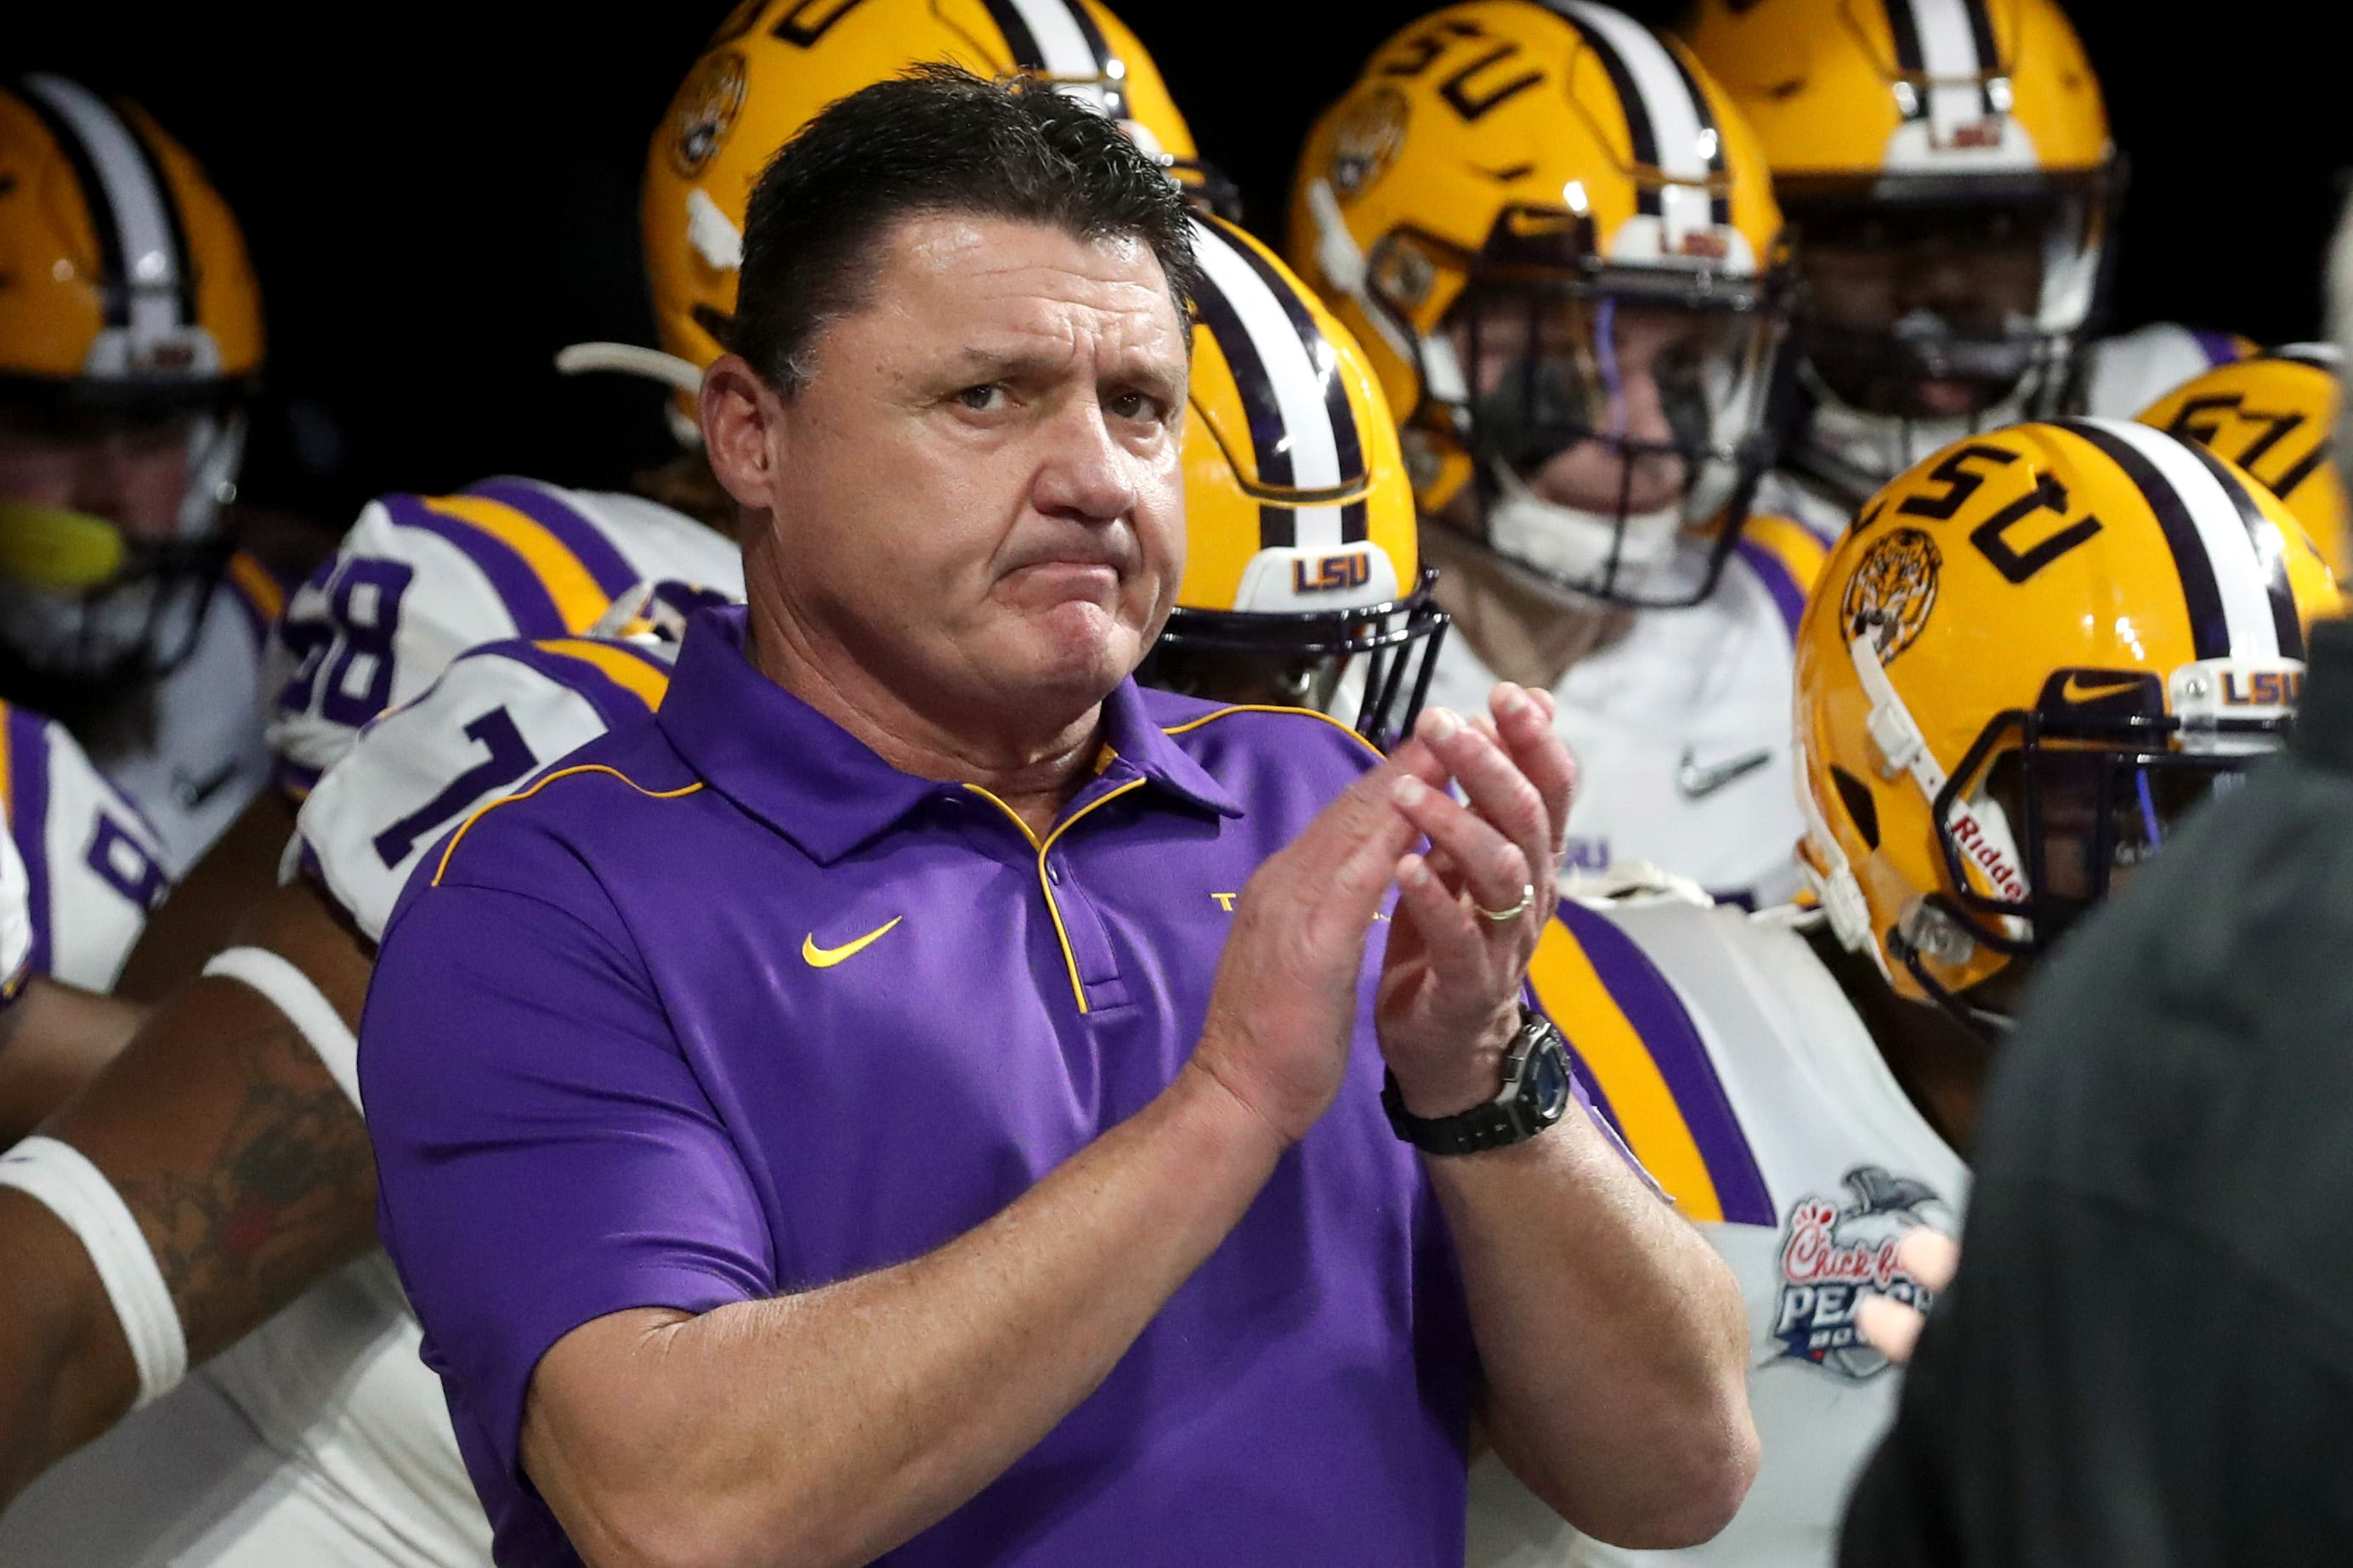 Opinion: Will Louisiana wake up now that COVID-19 has hit LSU football?